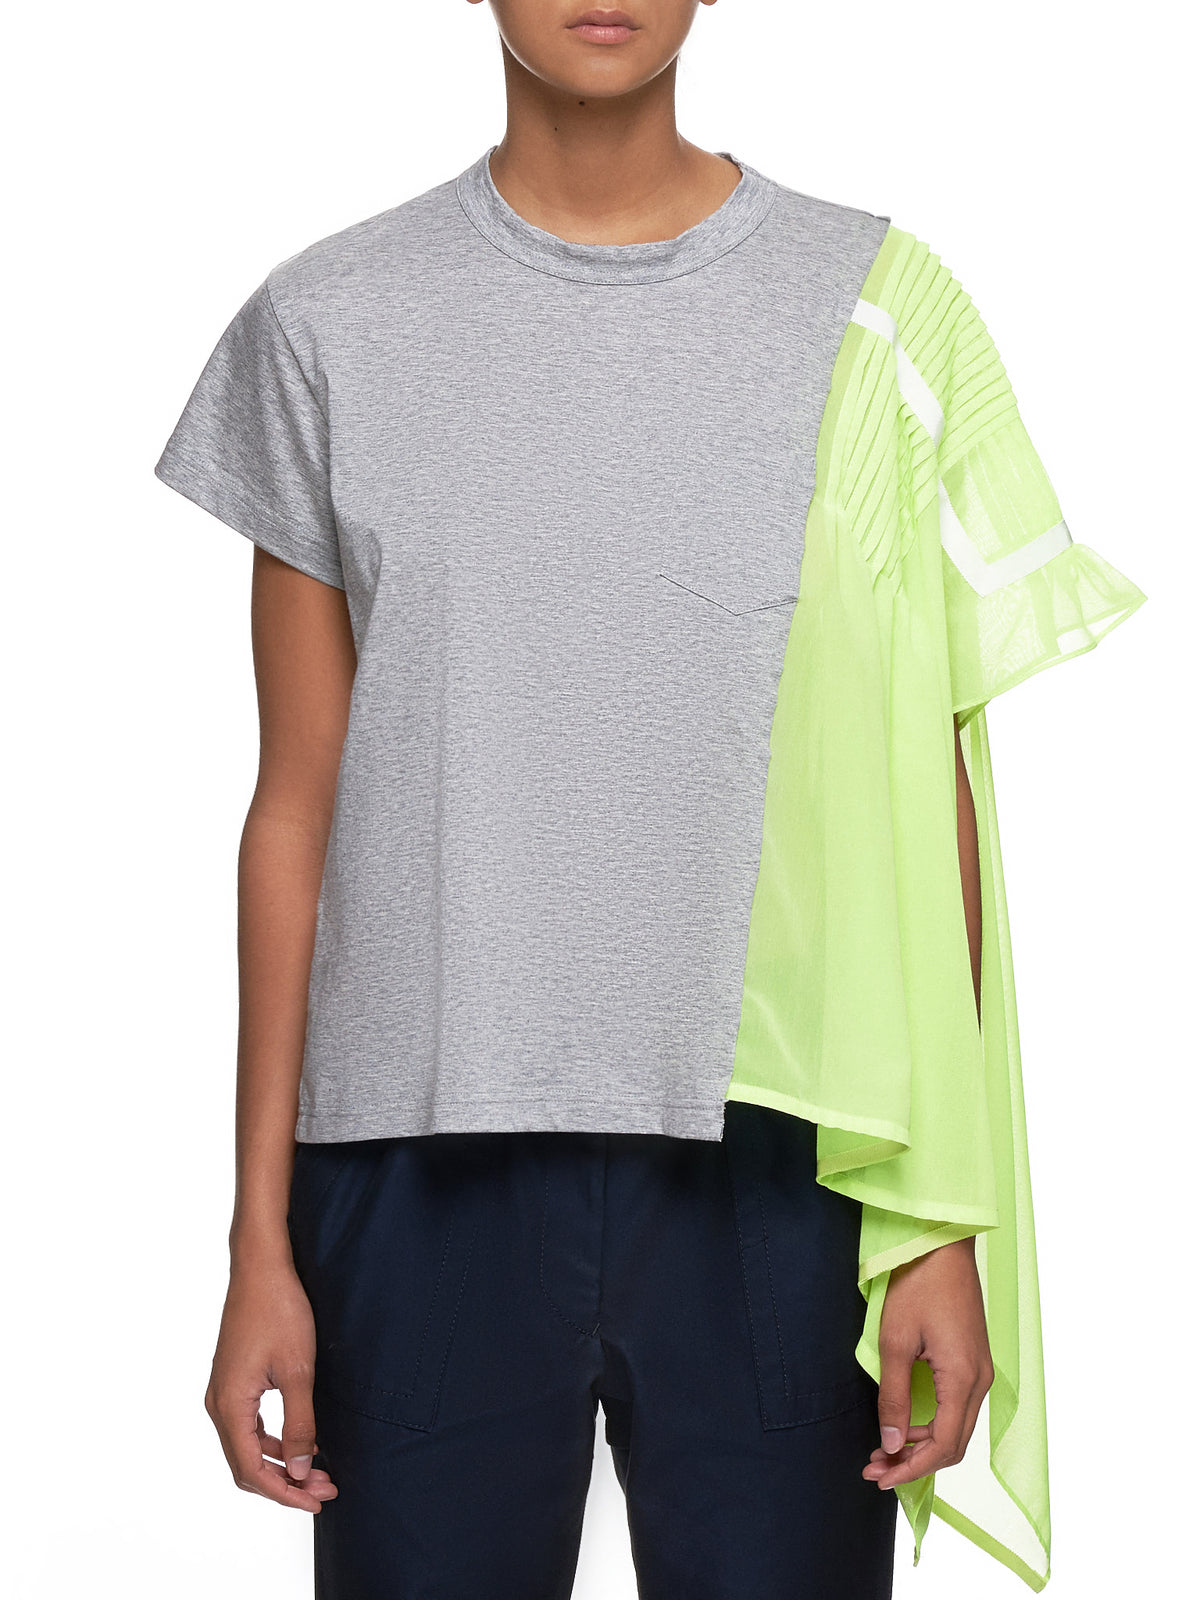 Split Translucent T-Shirt (19-04410-LIGHT-GRAY-YELLOW)